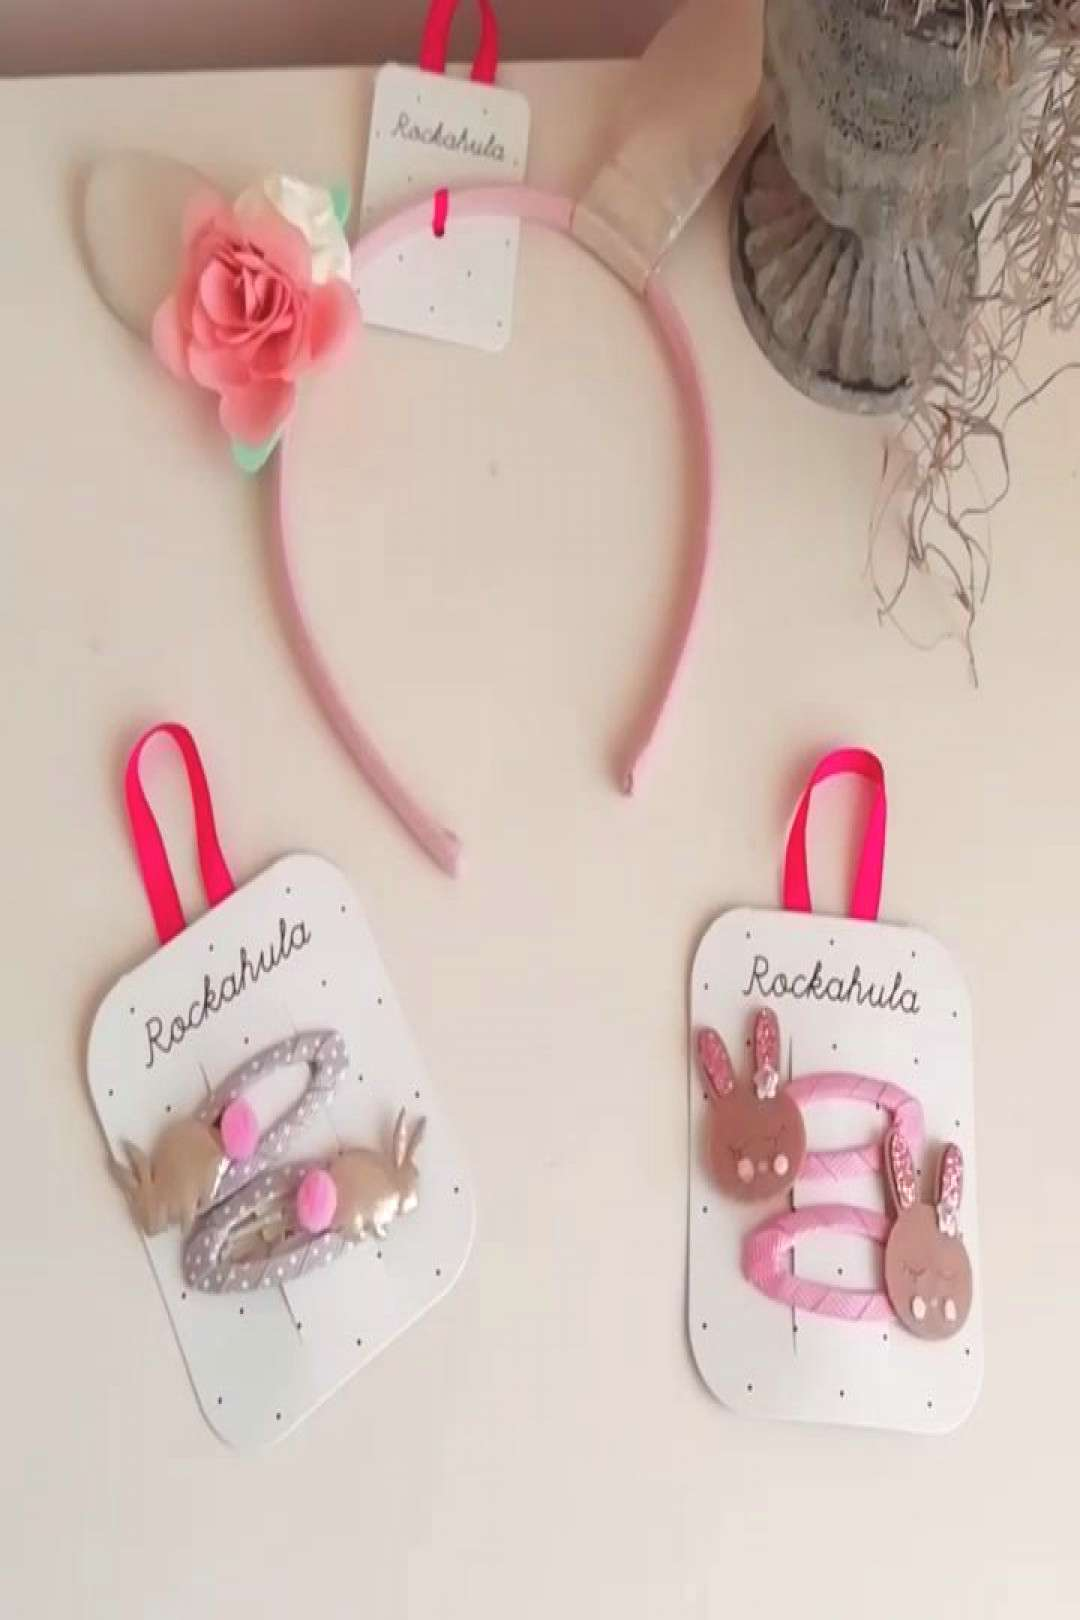 Rockahula bunny themed hair clips and Alice band - I thought it w